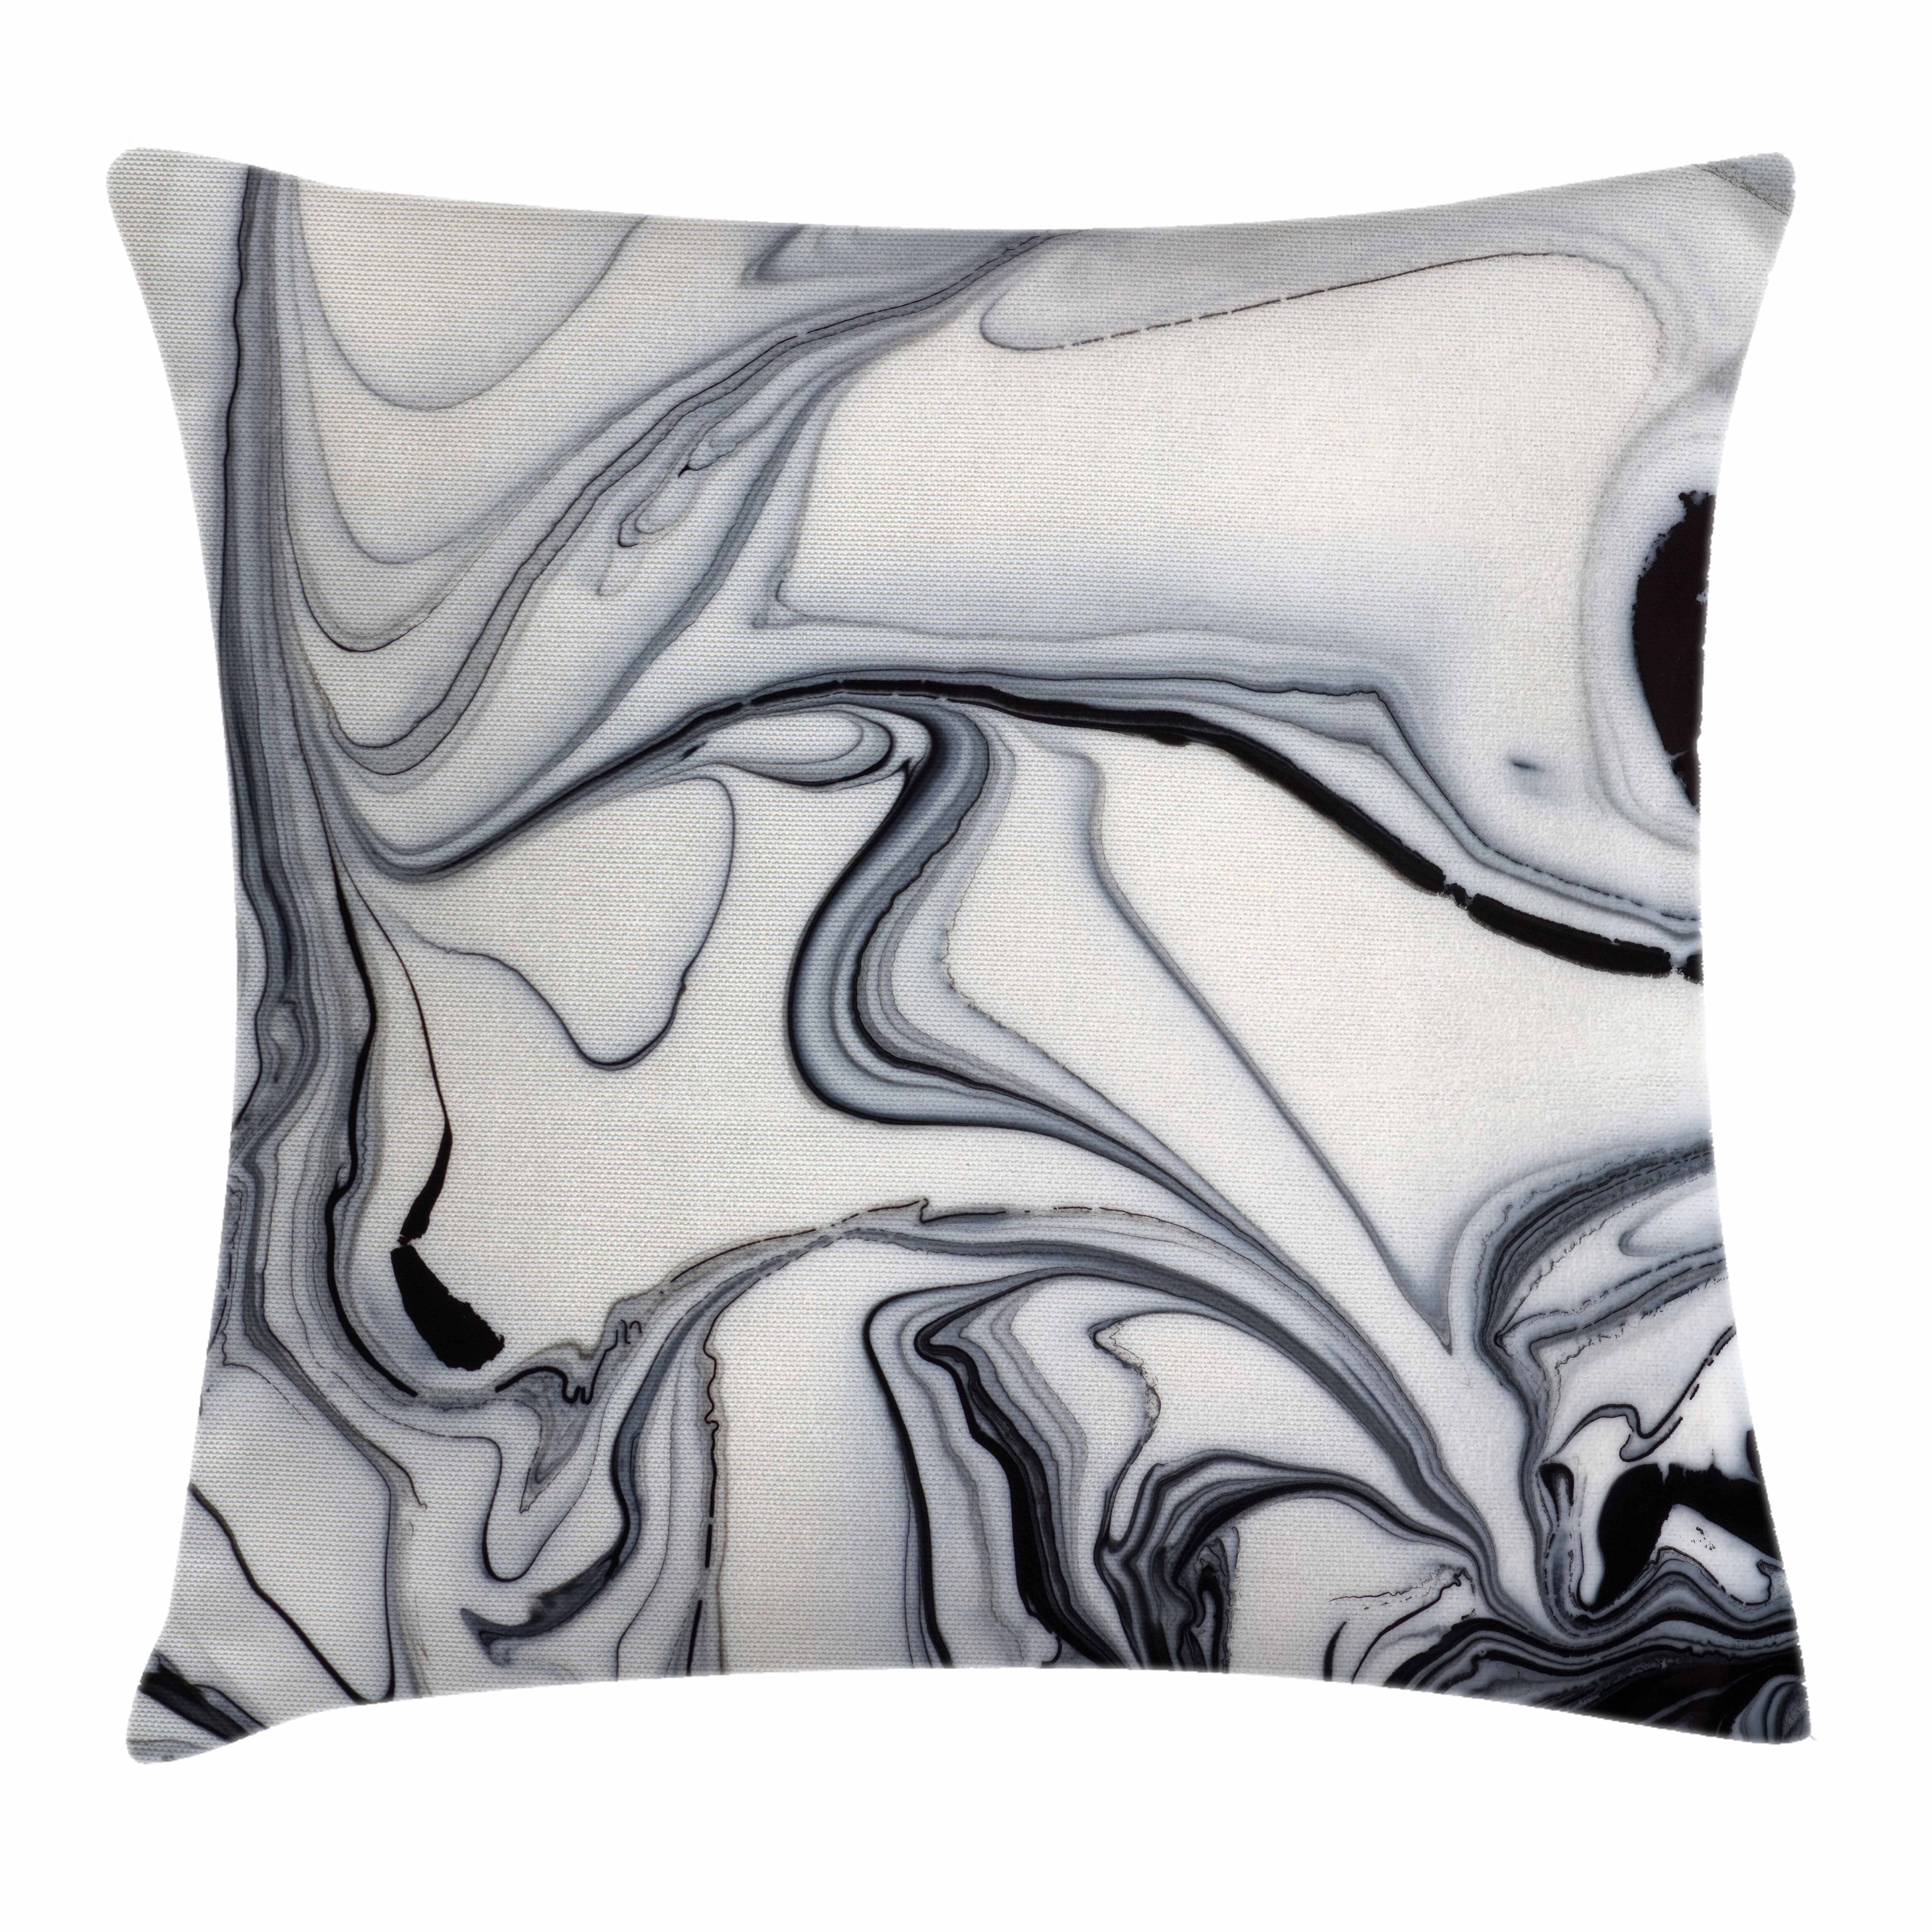 Marble Throw Pillow Cushion Cover, Trippy Mix of Colors with Unusual Forms Creative Paintbrush Style Image, Decorative Square Accent Pillow Case, 18 X 18 Inches, Black Light Grey Dust, by Ambesonne